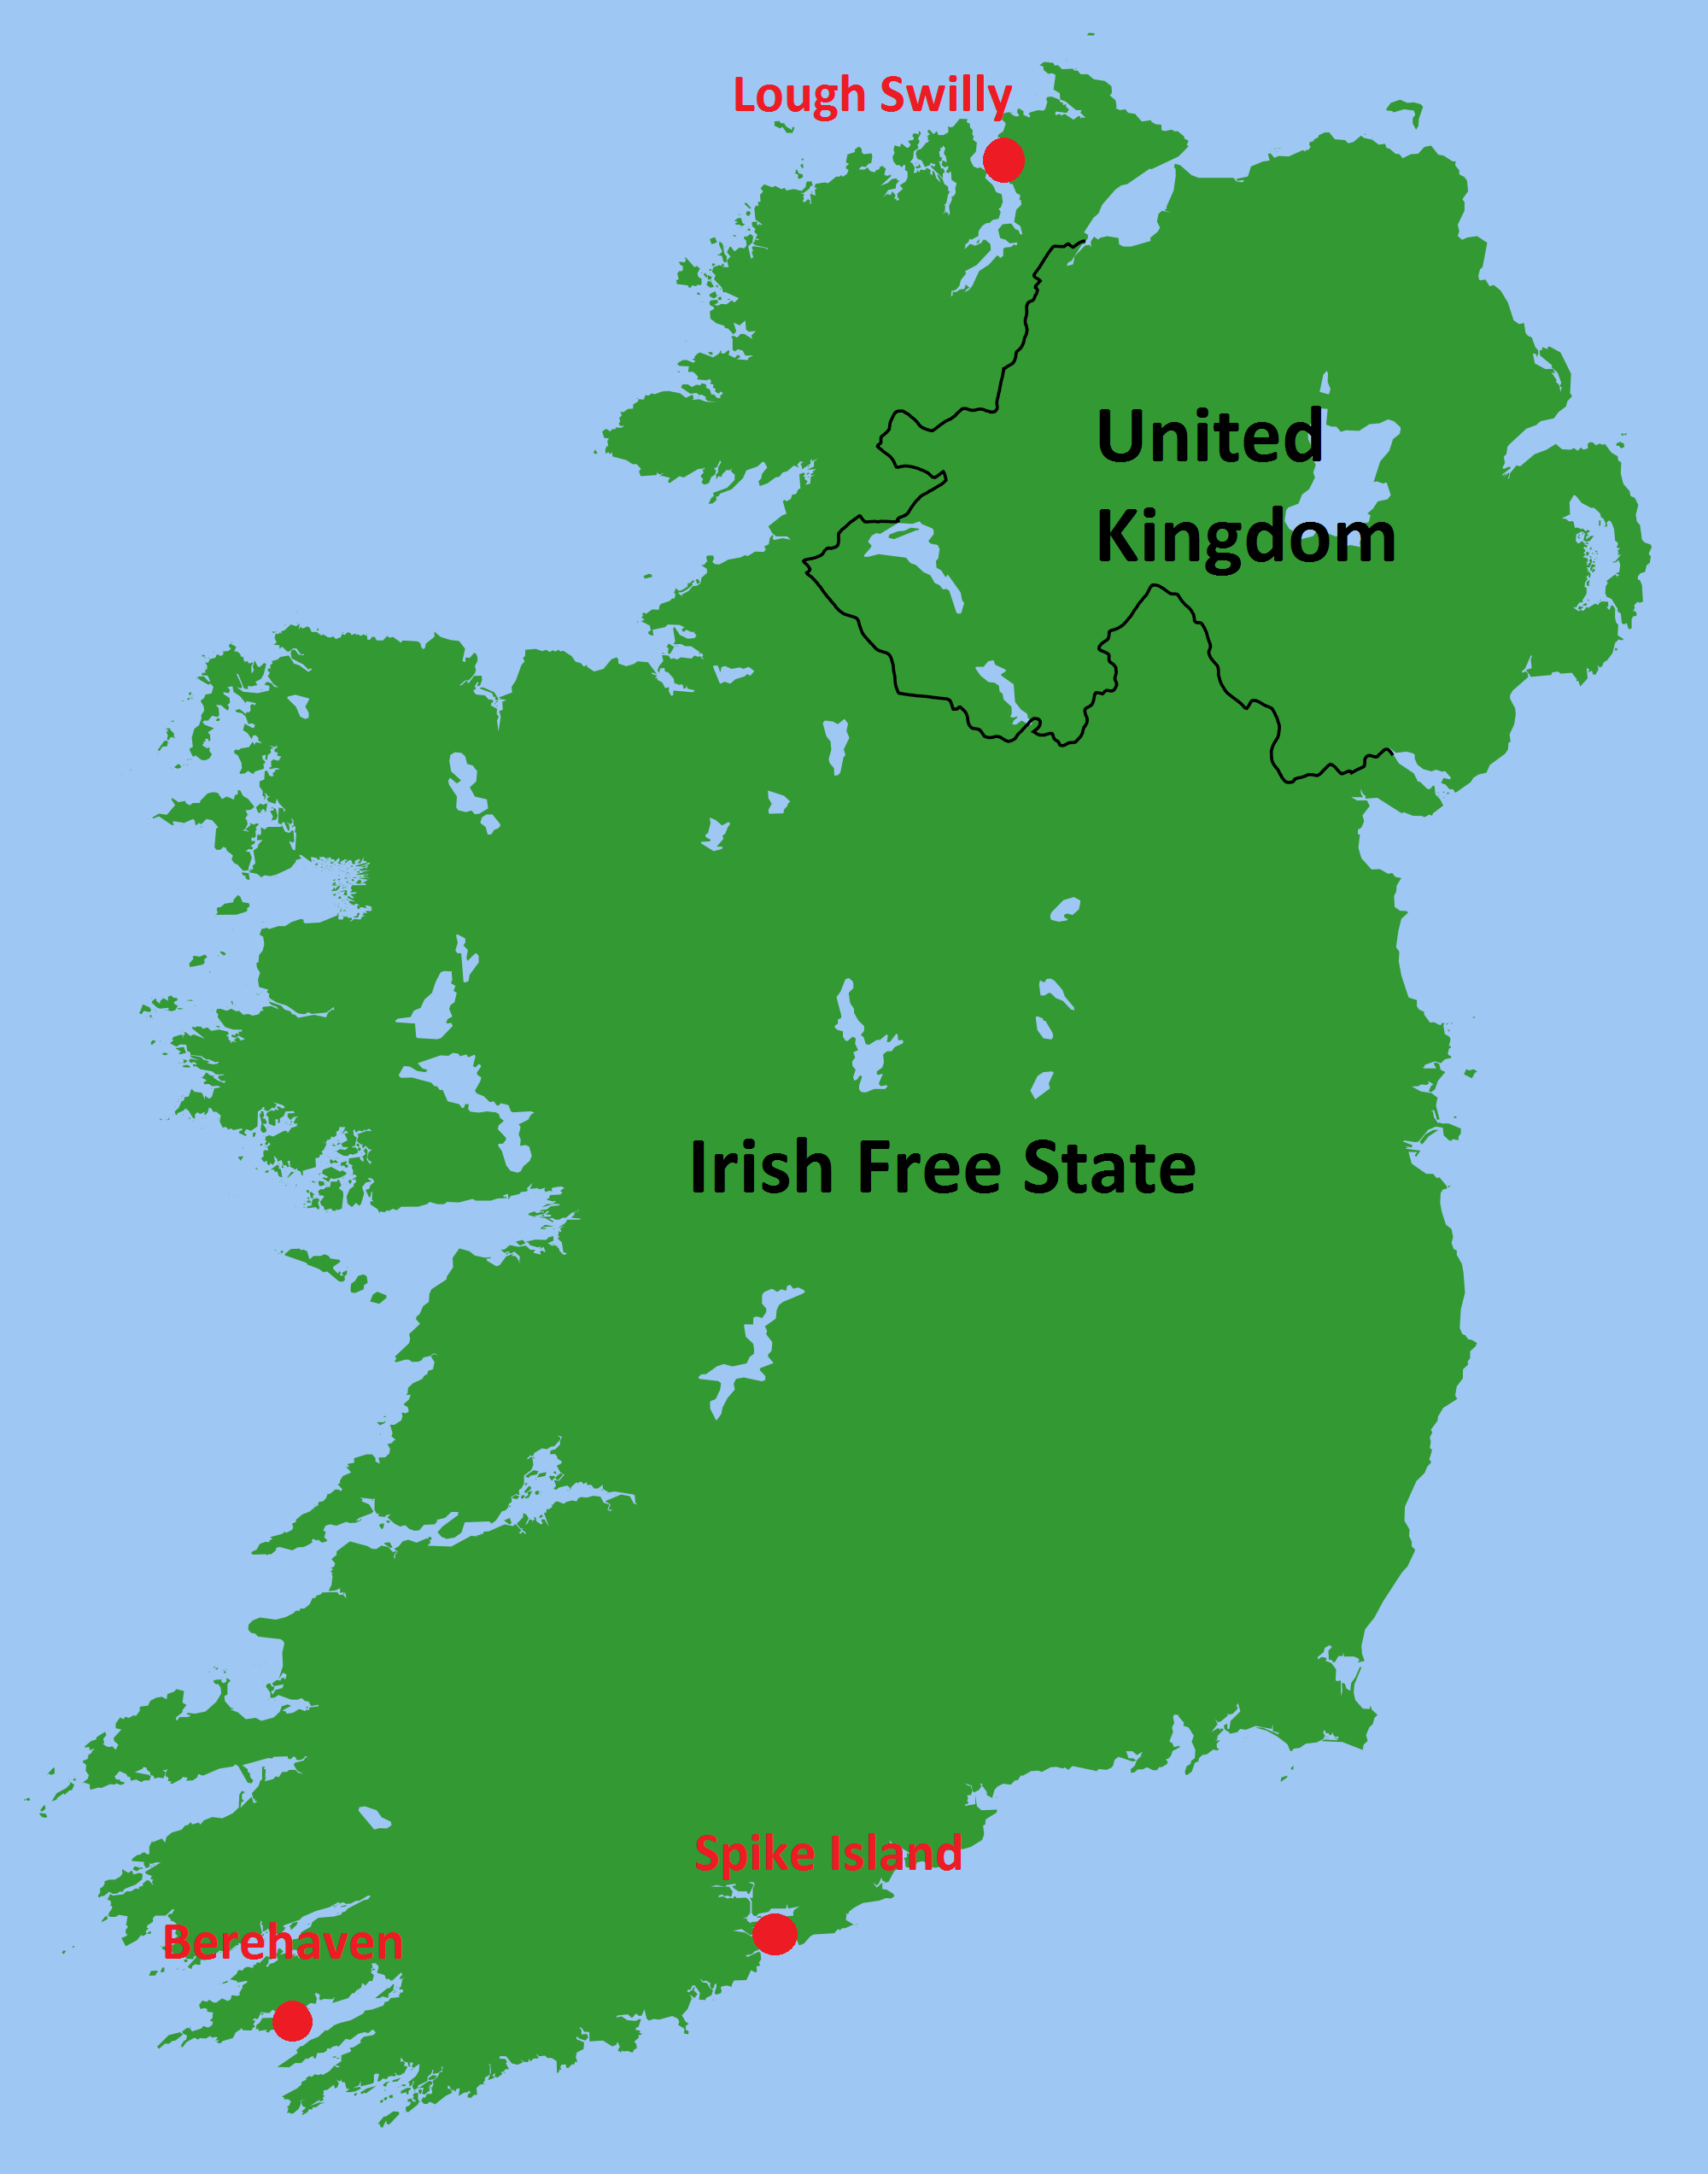 File:Treaty Ports (Ireland).png - Wikimedia Commons